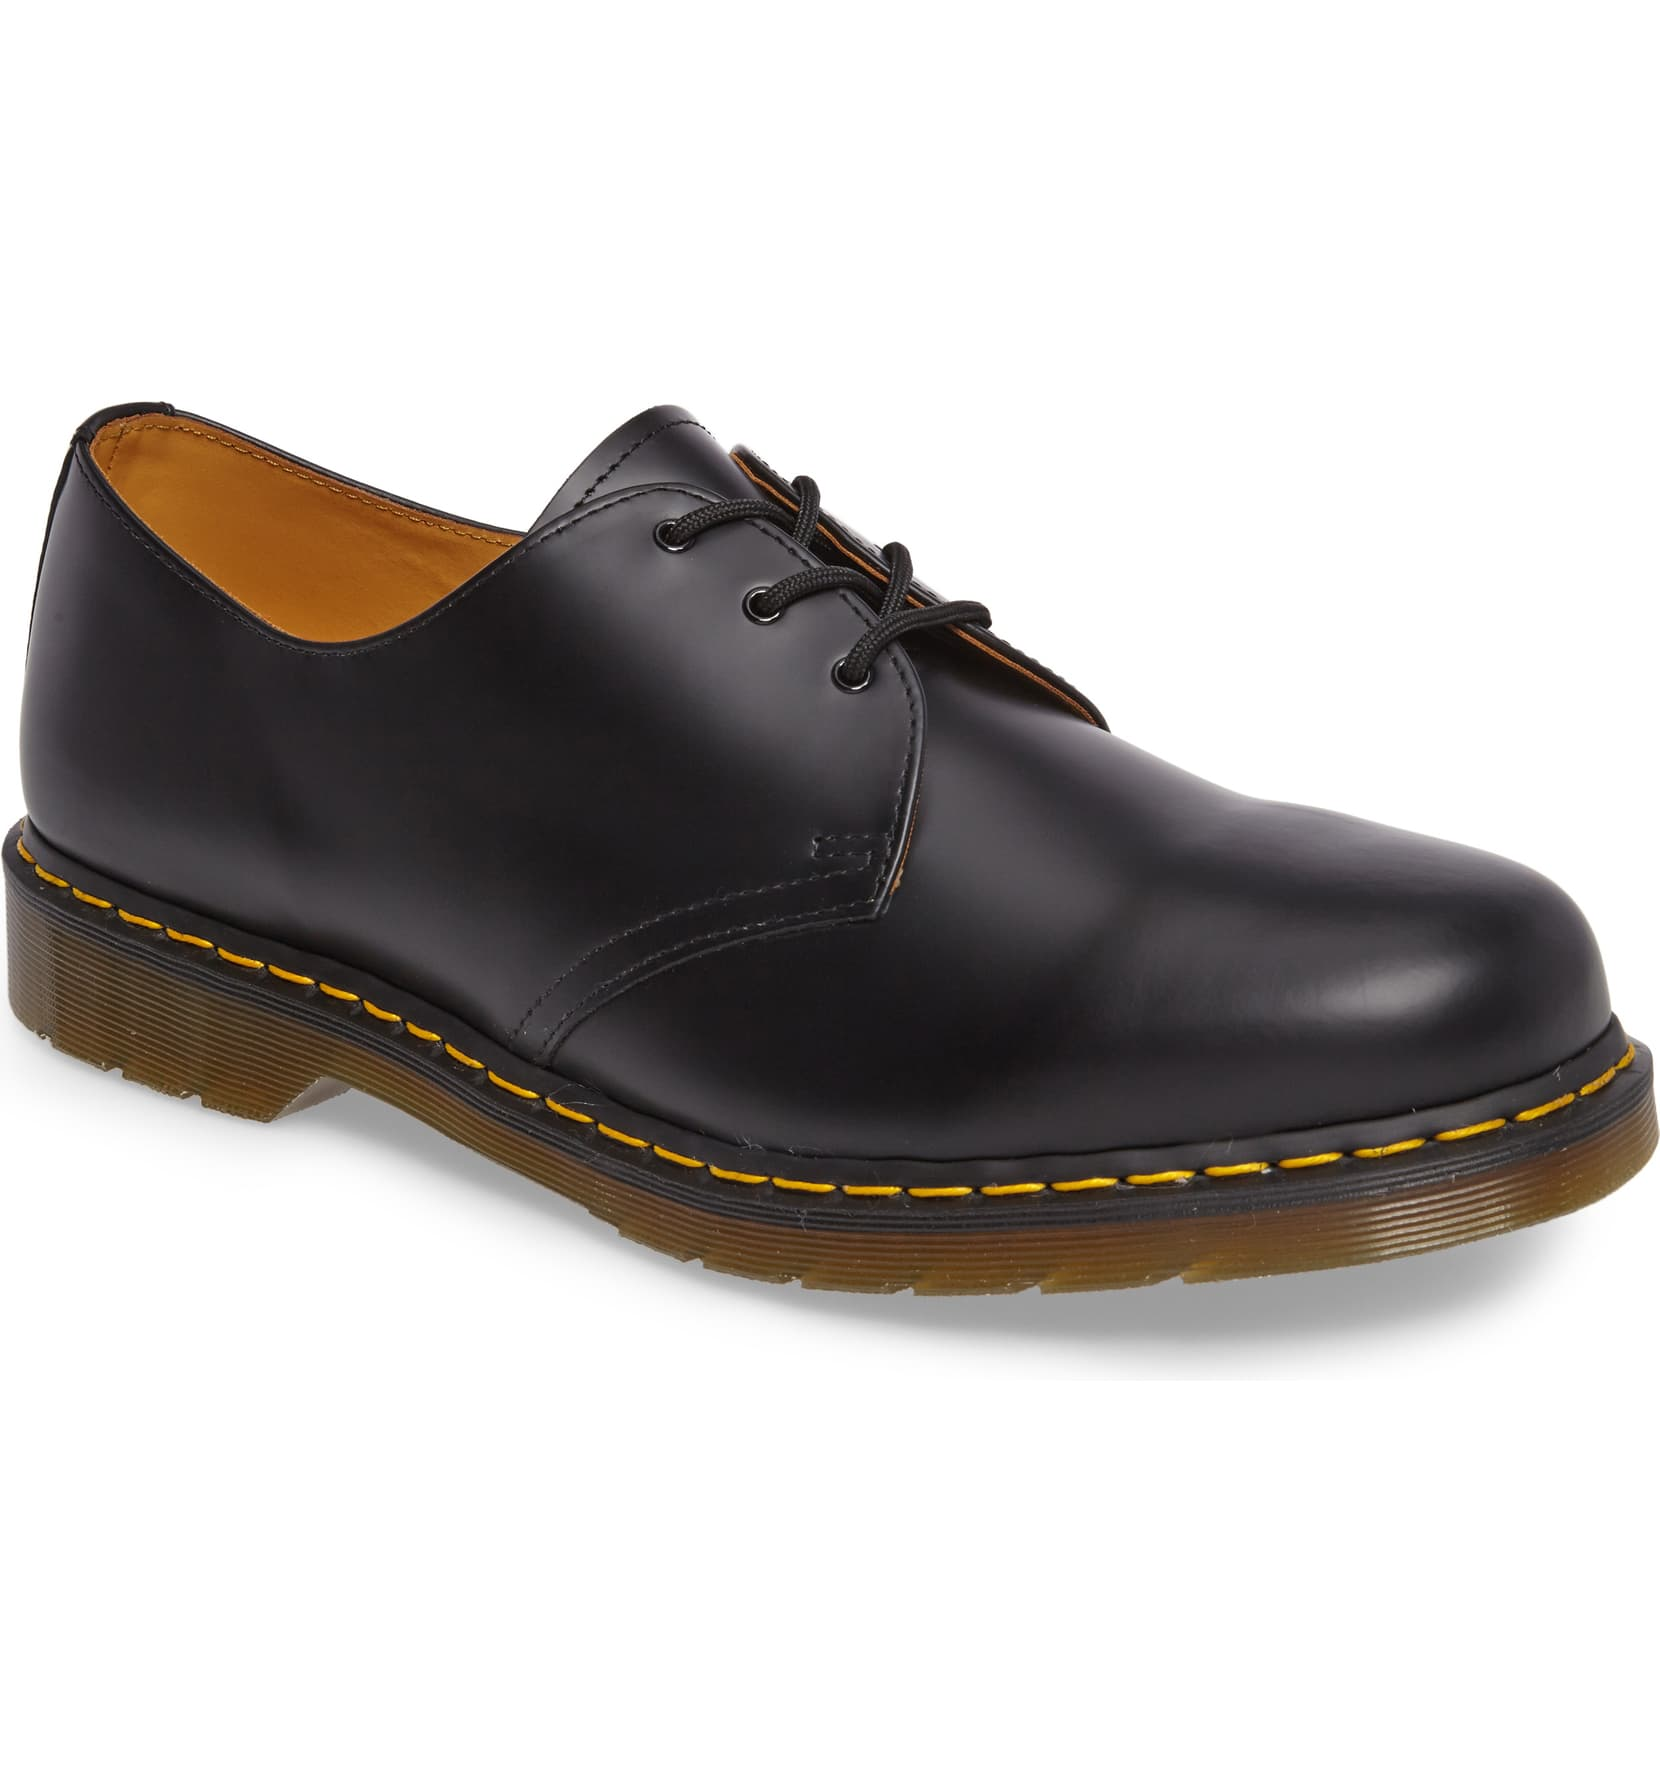 1461 Gibson Smooth Oxfords by Dr. Martens, available on nordstrom.com for $120 Kendall Jenner Shoes Exact Product